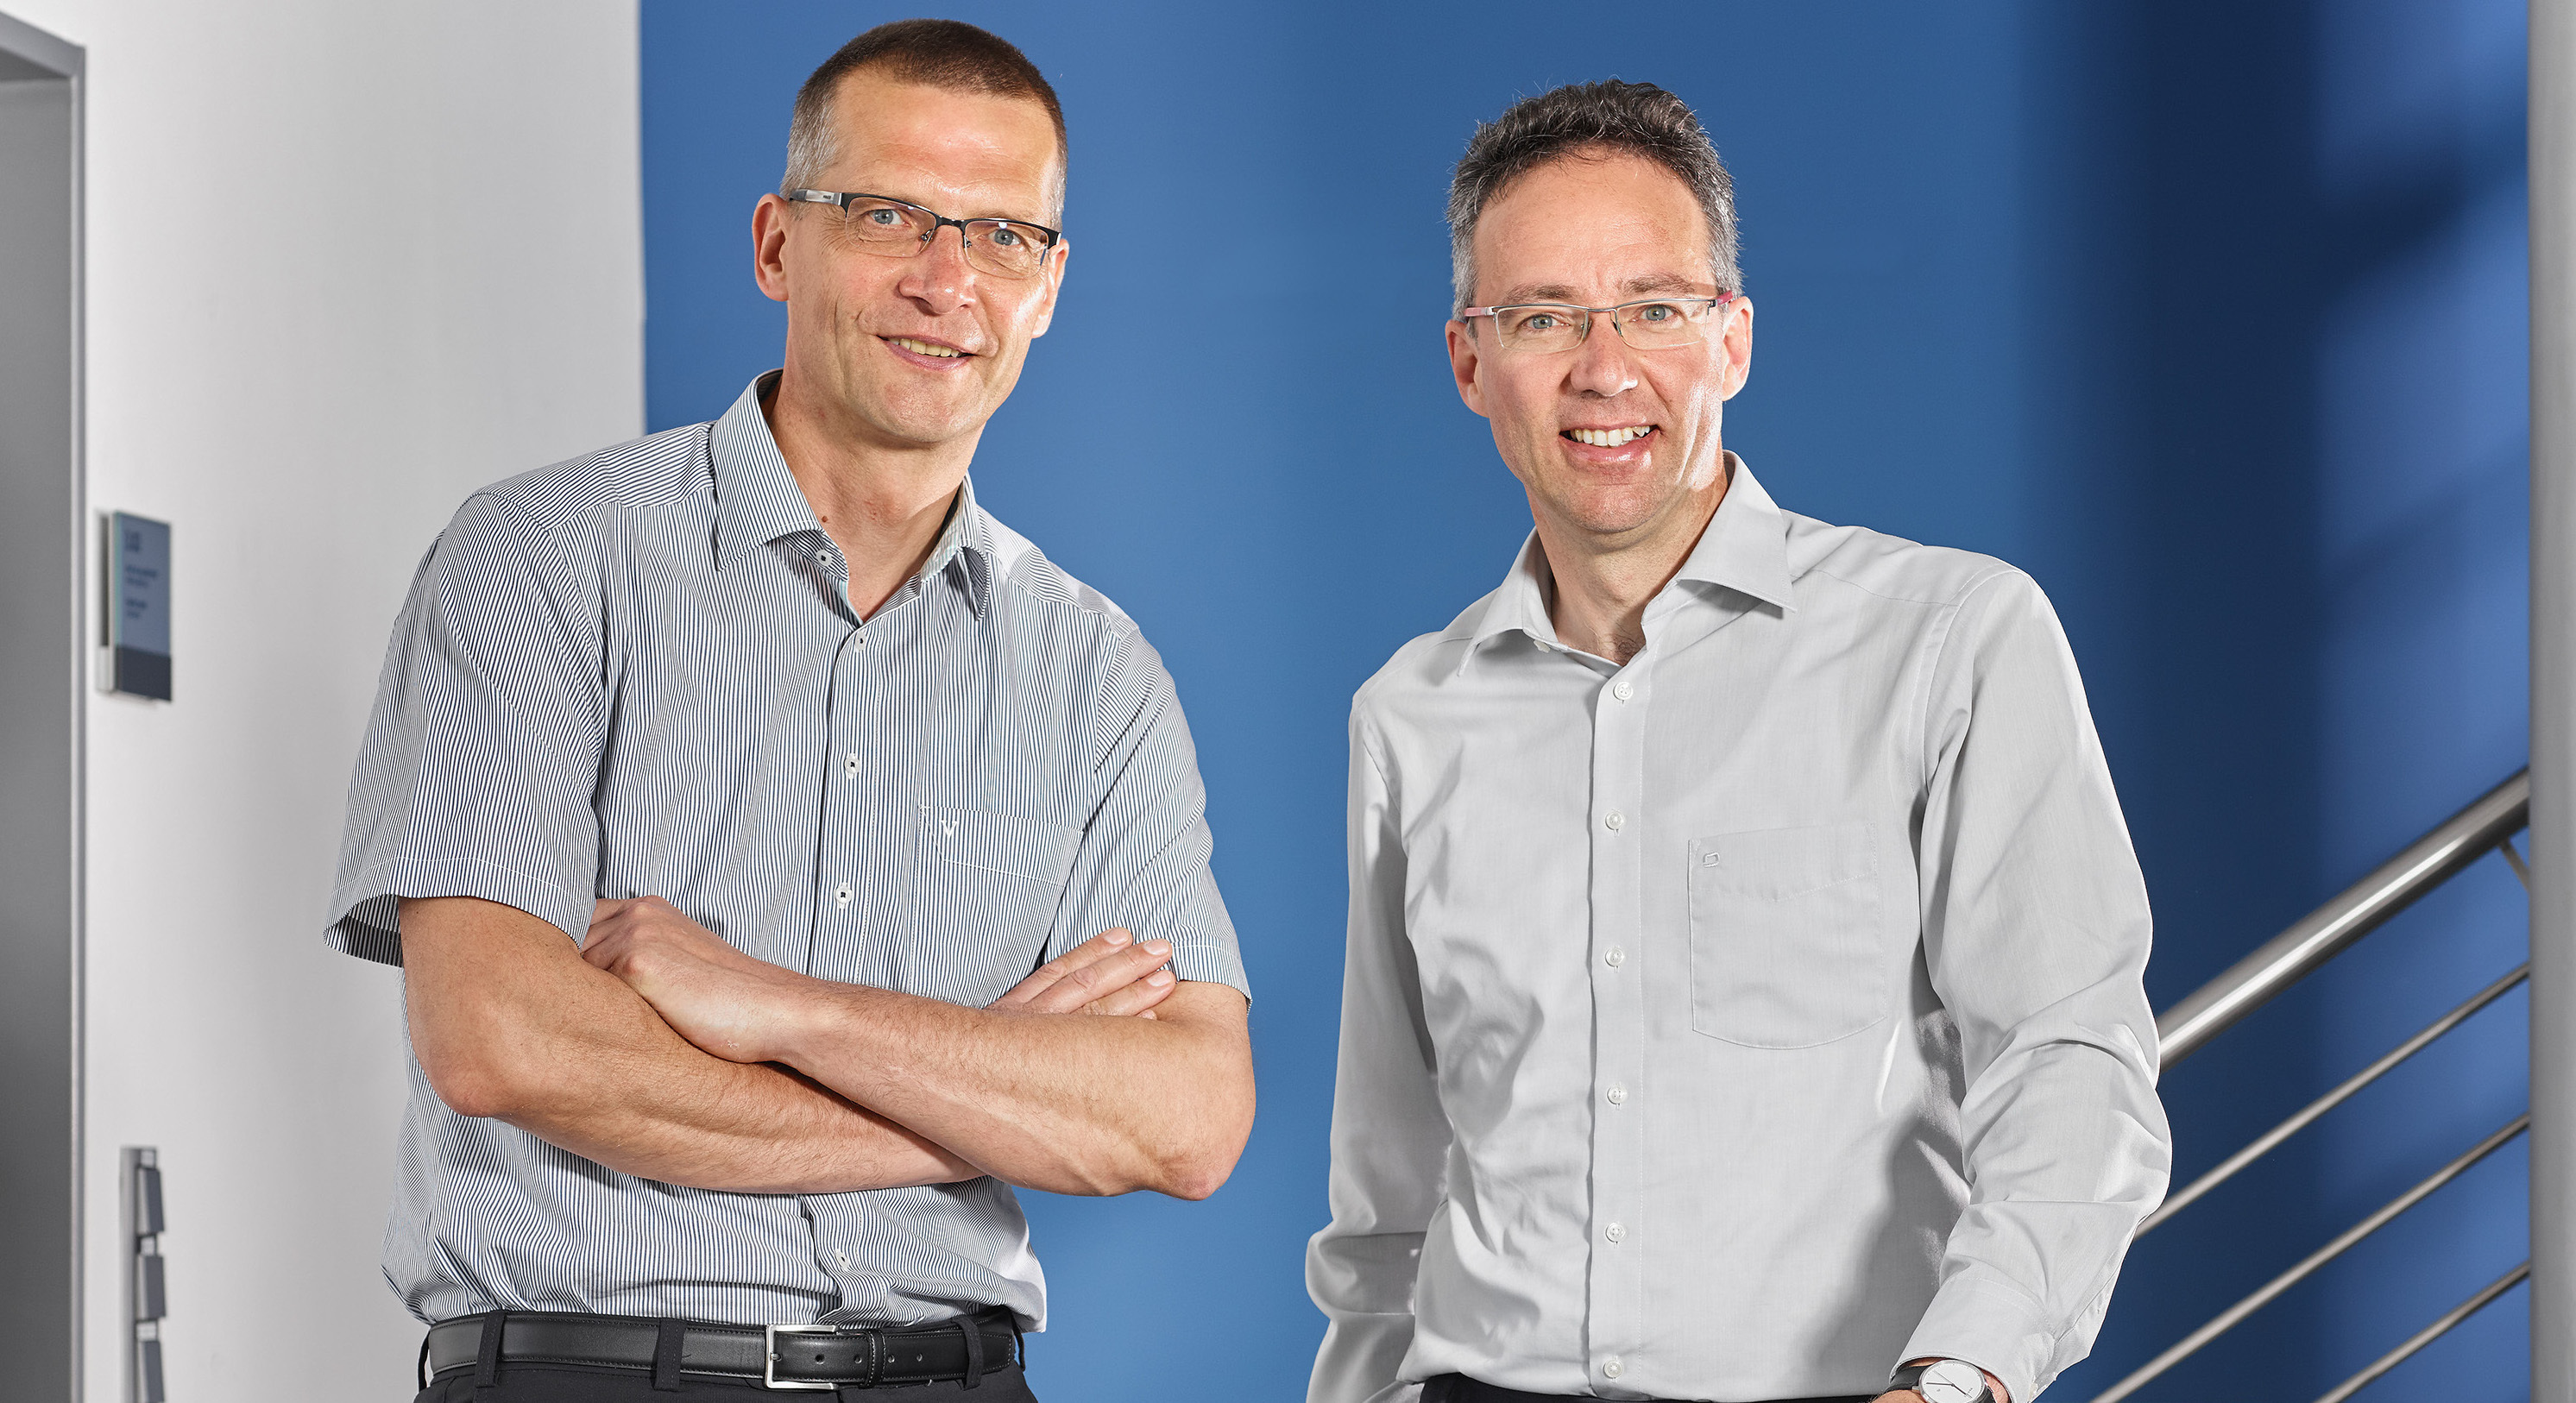 Professor Dirk Heberling and Dr. Peter Knott are experts in high frequency physics and radar techniques.